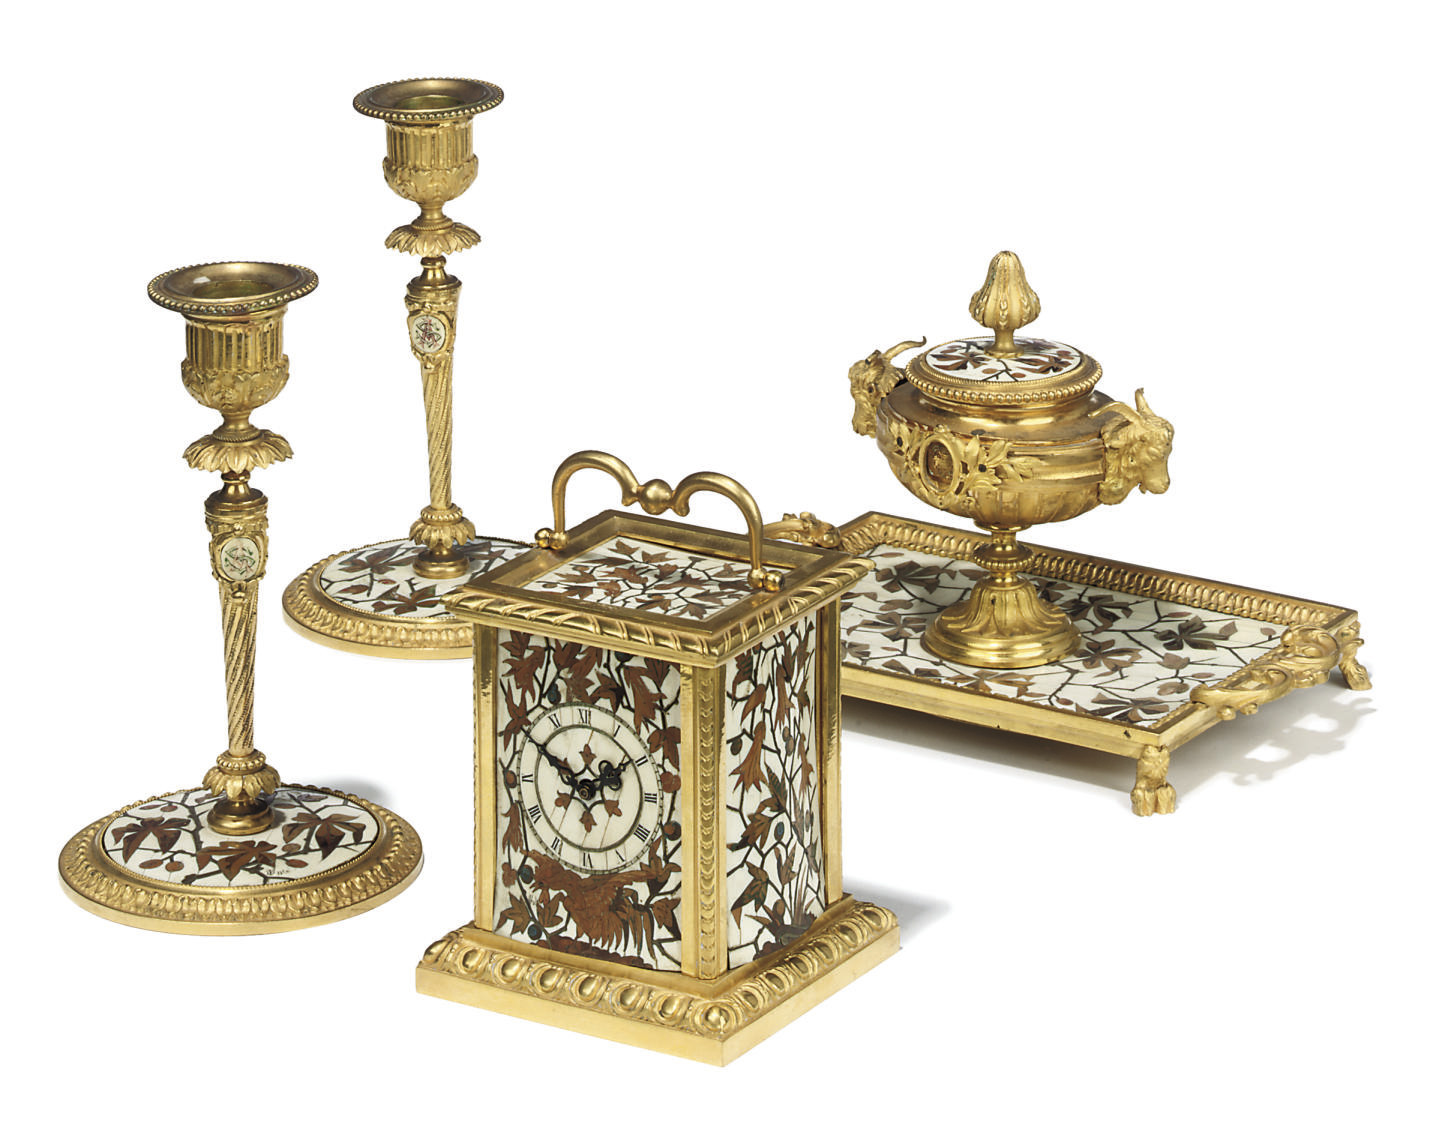 A NAPOLEON III ORMOLU-MOUNTED IVORY AND FRUITWOOD MARQUETRY FOUR-PIECE DESK-SET